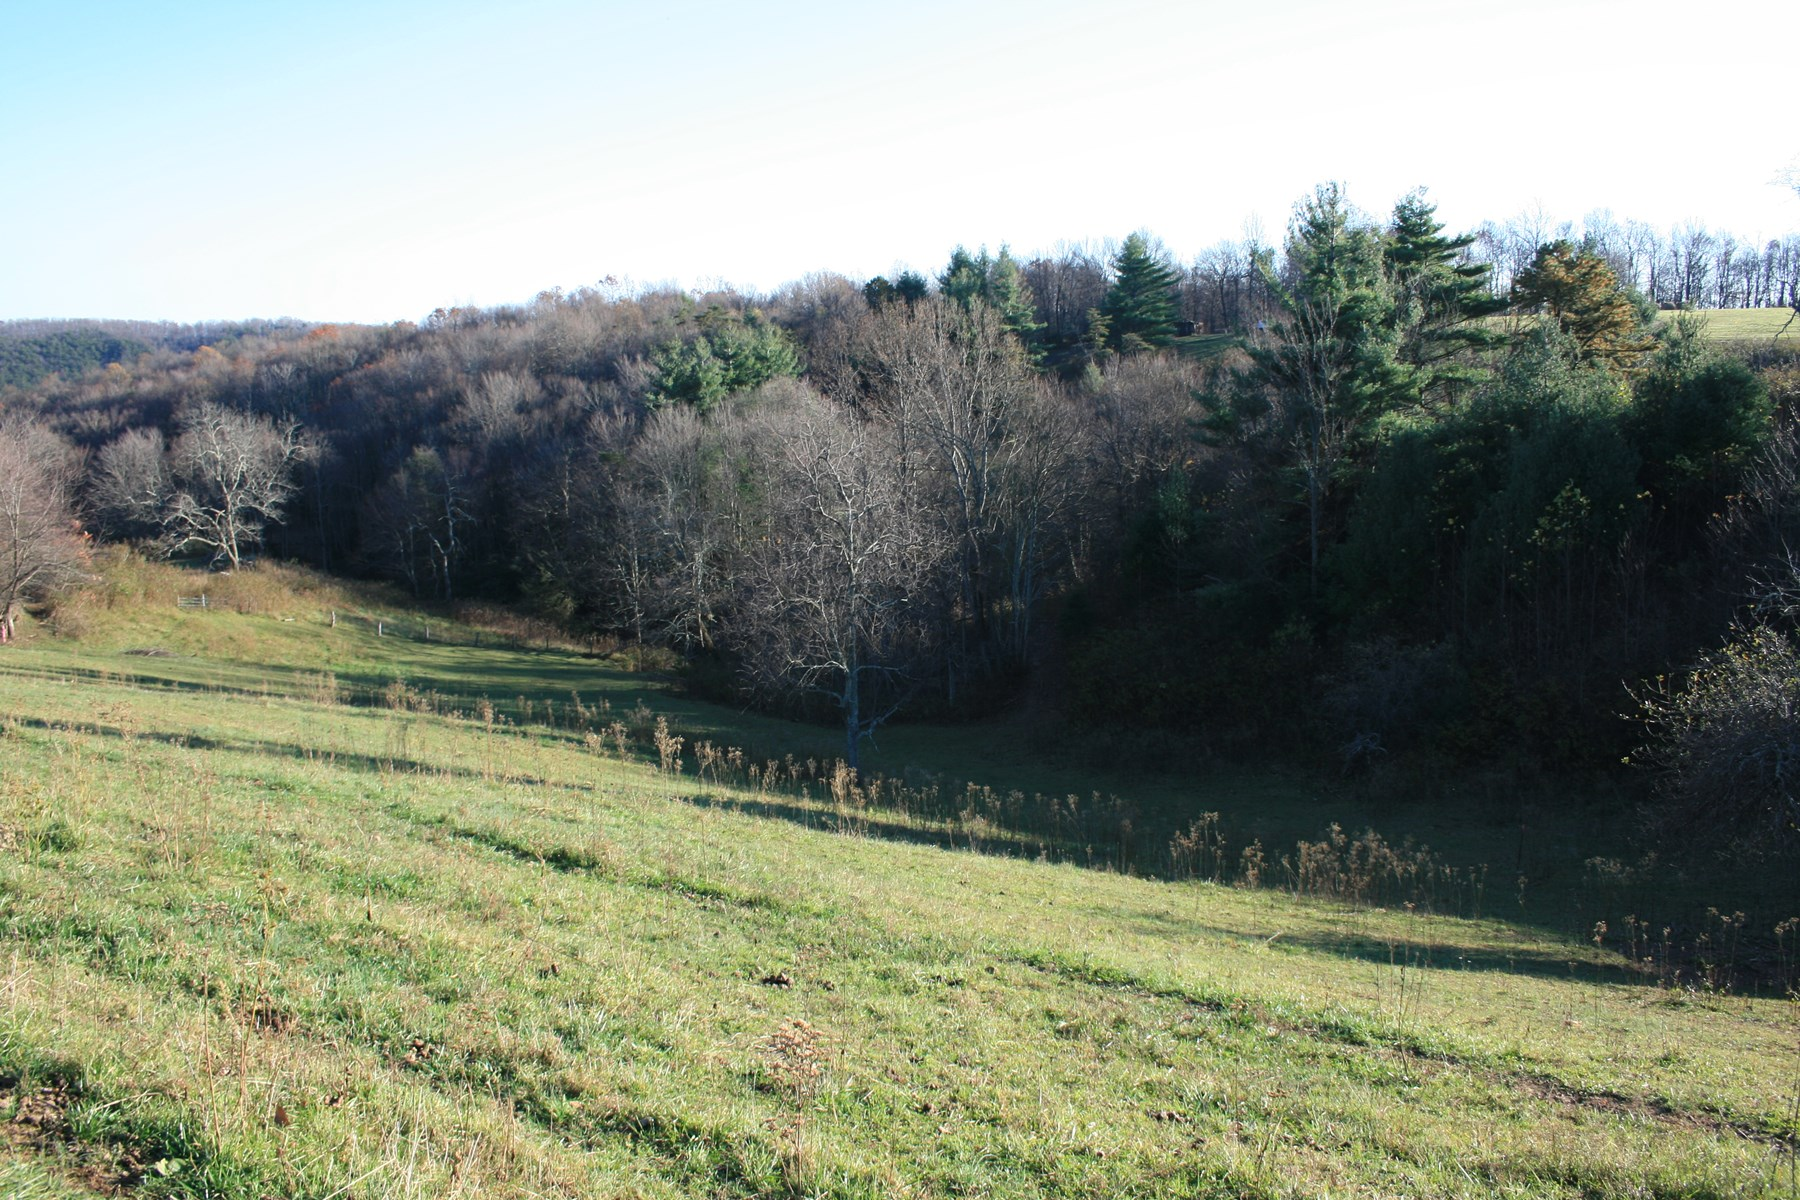 7.49  ACRES FOR SELL IN PATRICK COUNTY,  VIRGINIA